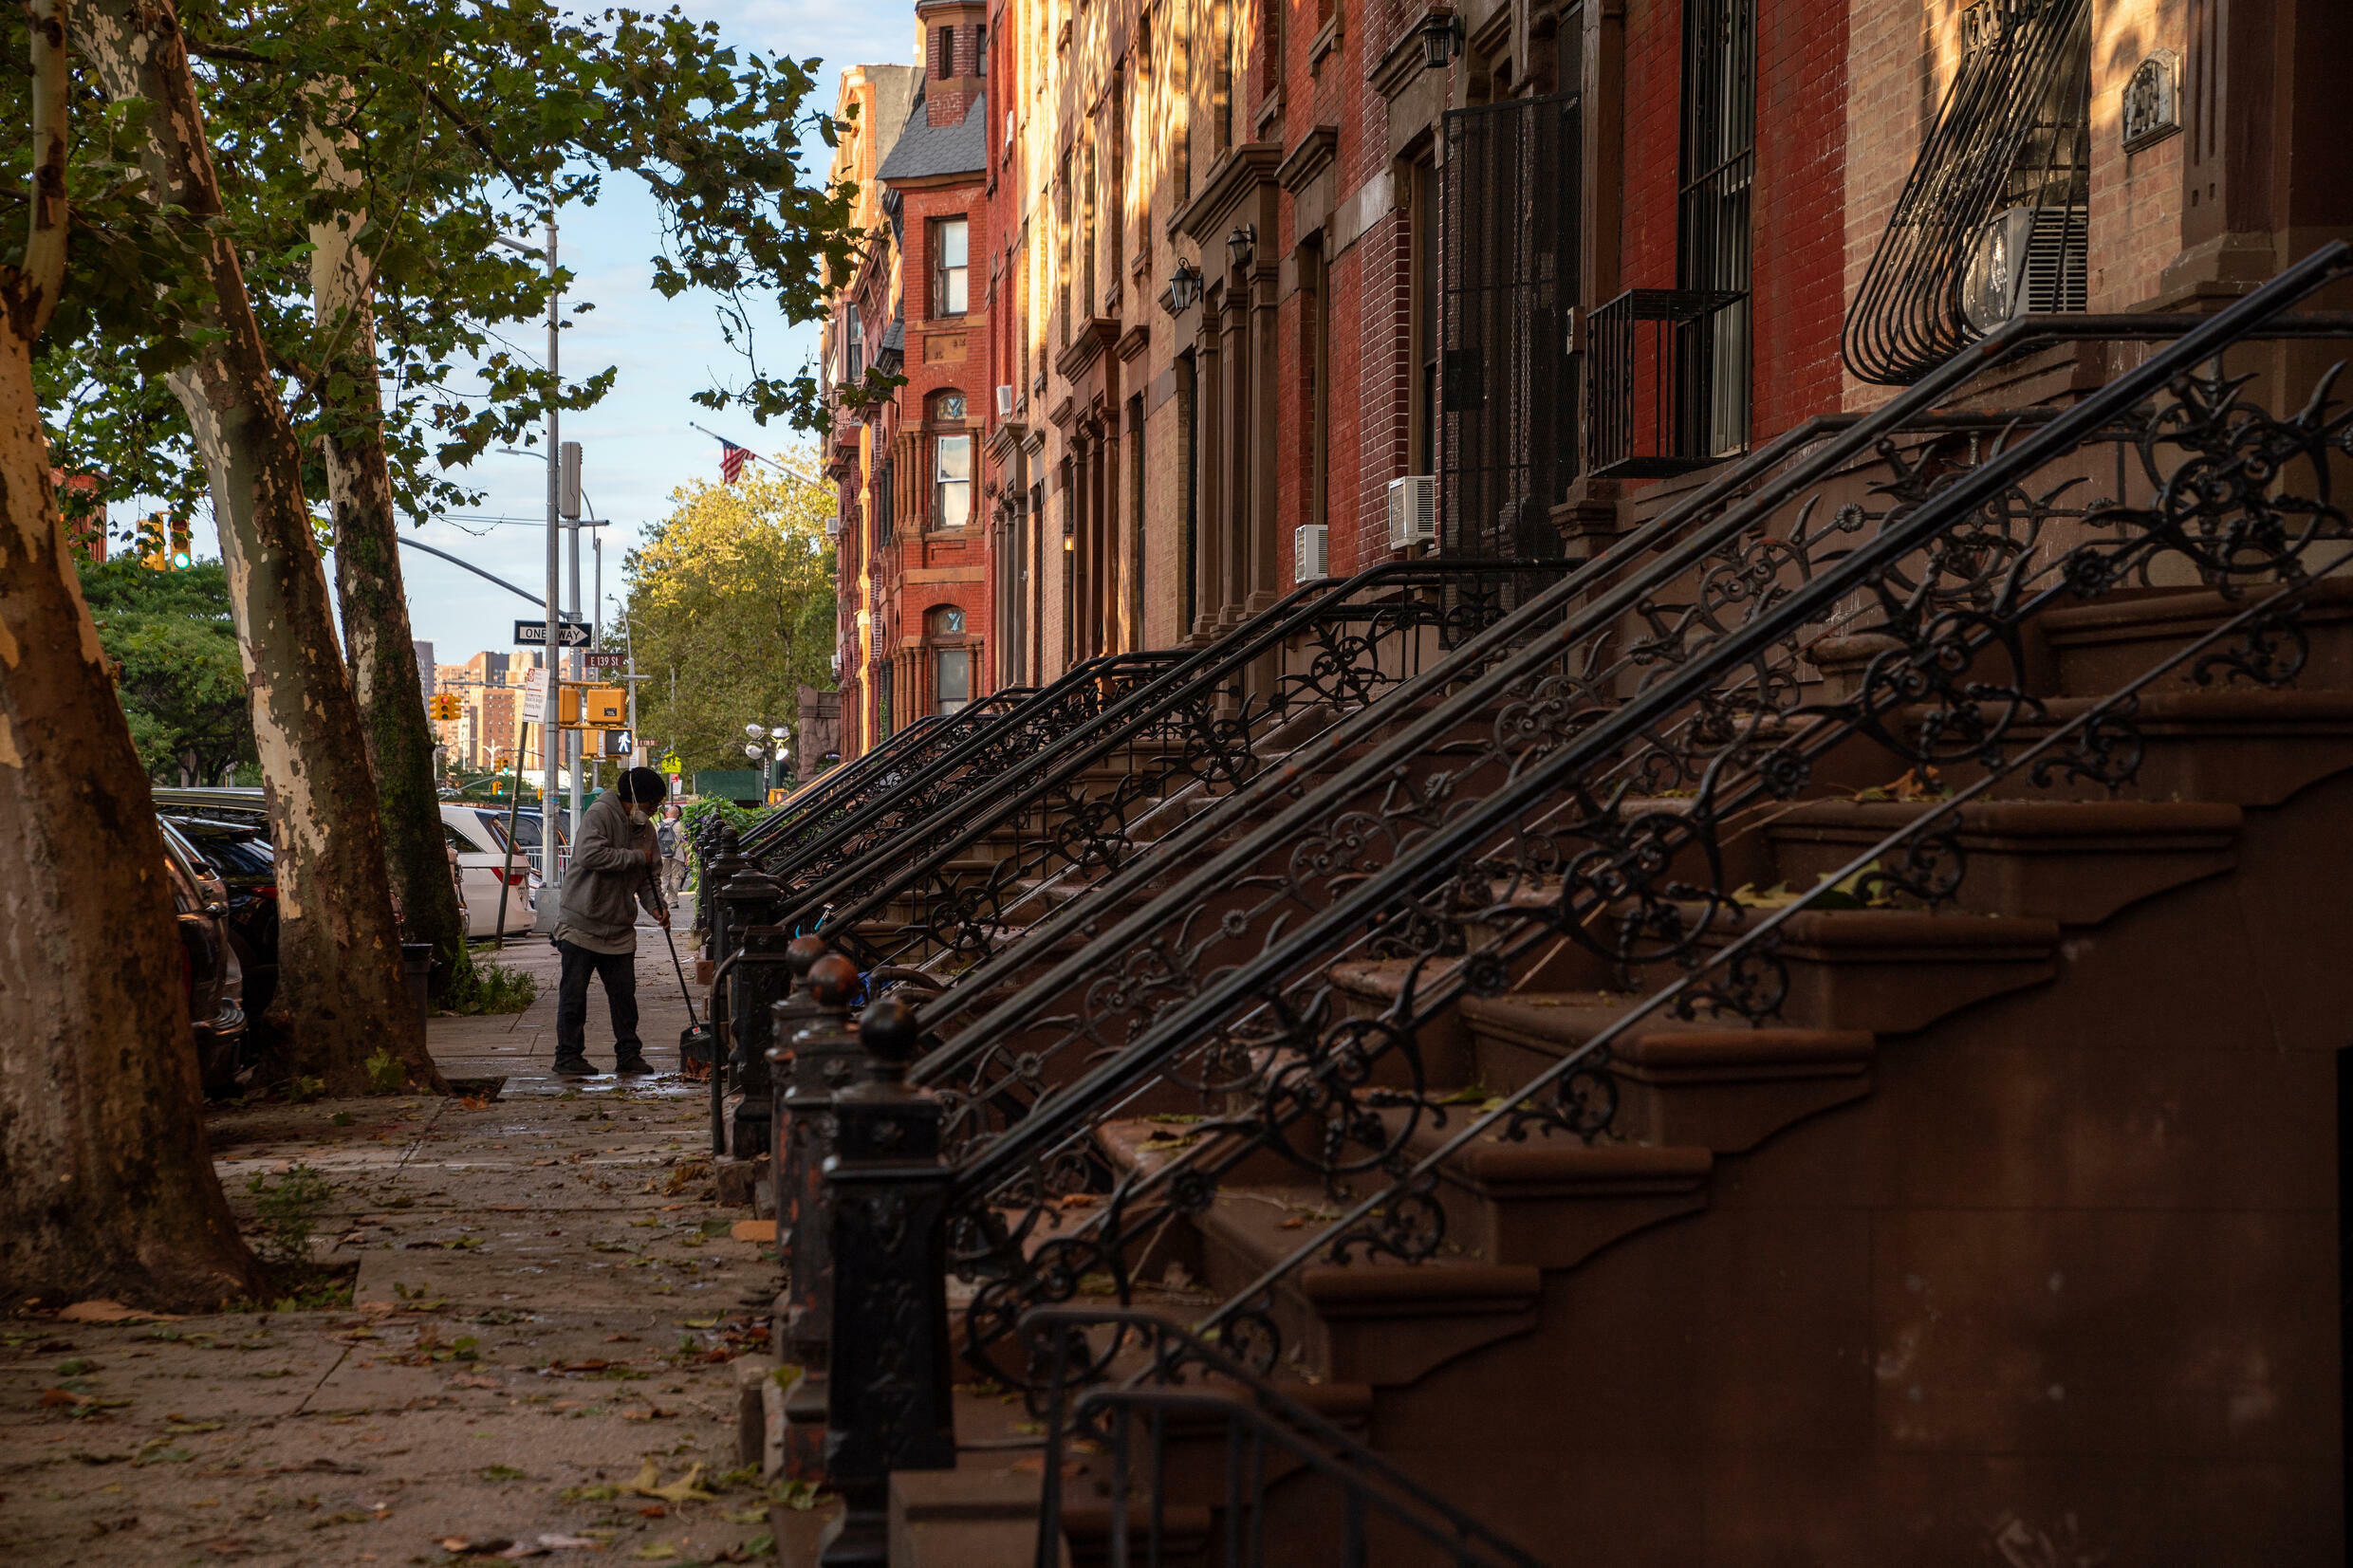 A person sweeps up debris in the front of a brownstone after the extremely heavy rainfall from Hurricane Ida on September 2, 2021, in the Bronx borough of New York City